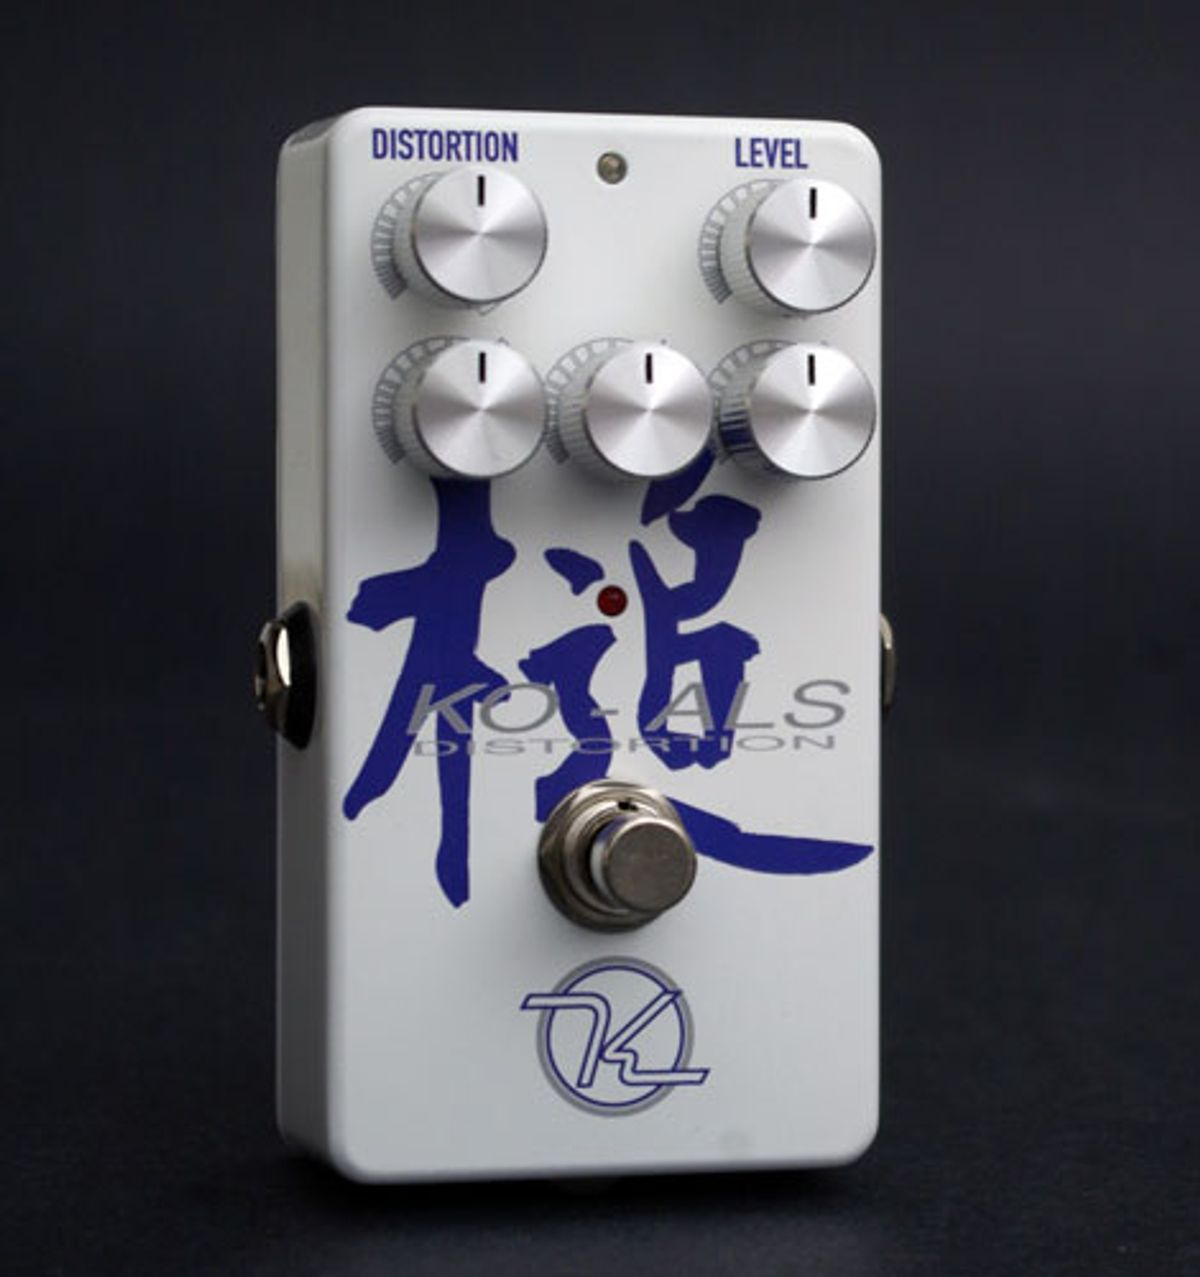 Keeley Electronics Releases KO-ALS Distortion Pedal